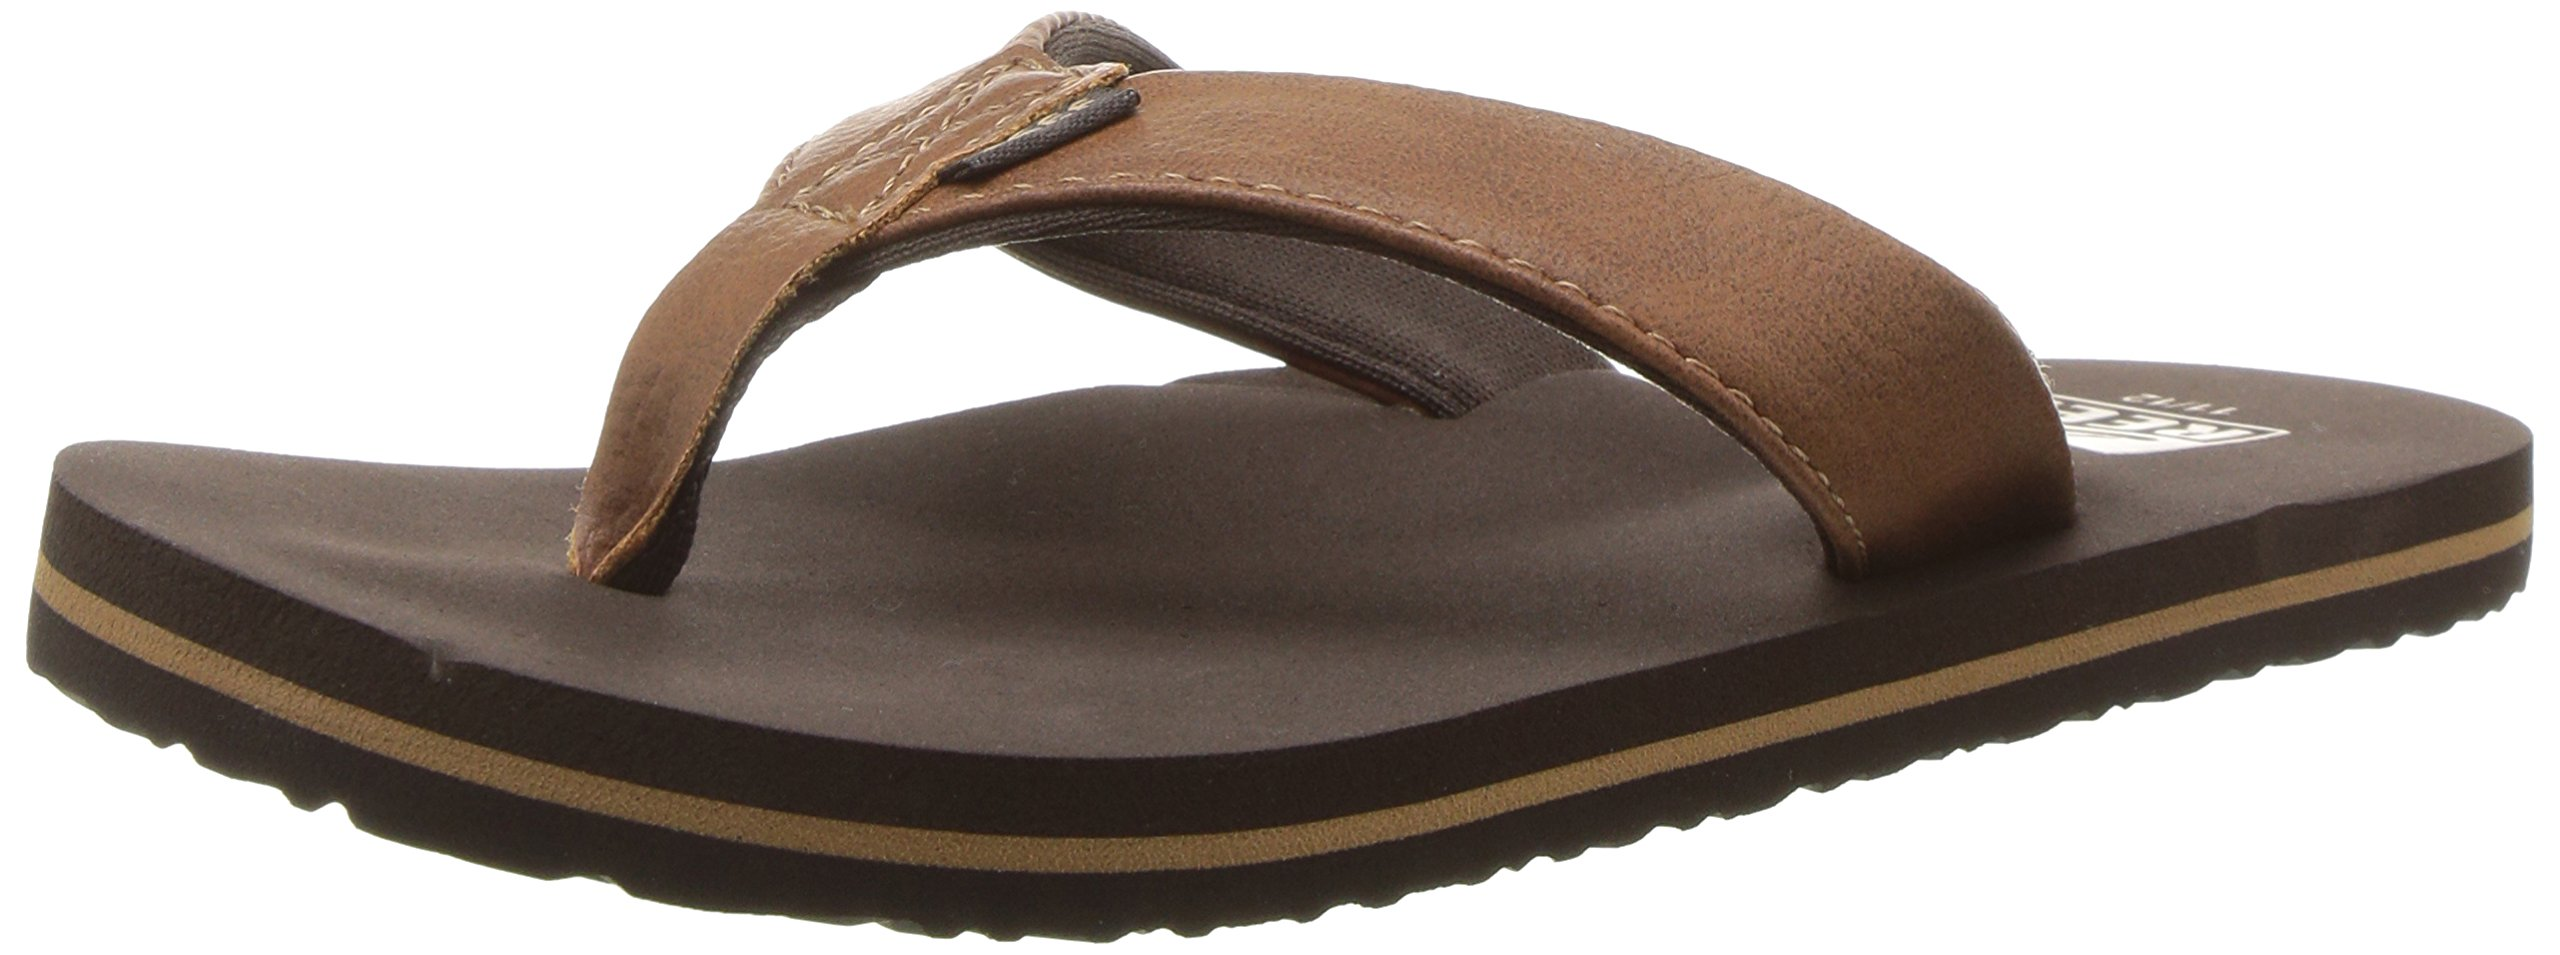 Reef Boys' Grom Twinpin-K Sandal, Brown, 04R (4/5 M US Big Kid M US Big Kid)